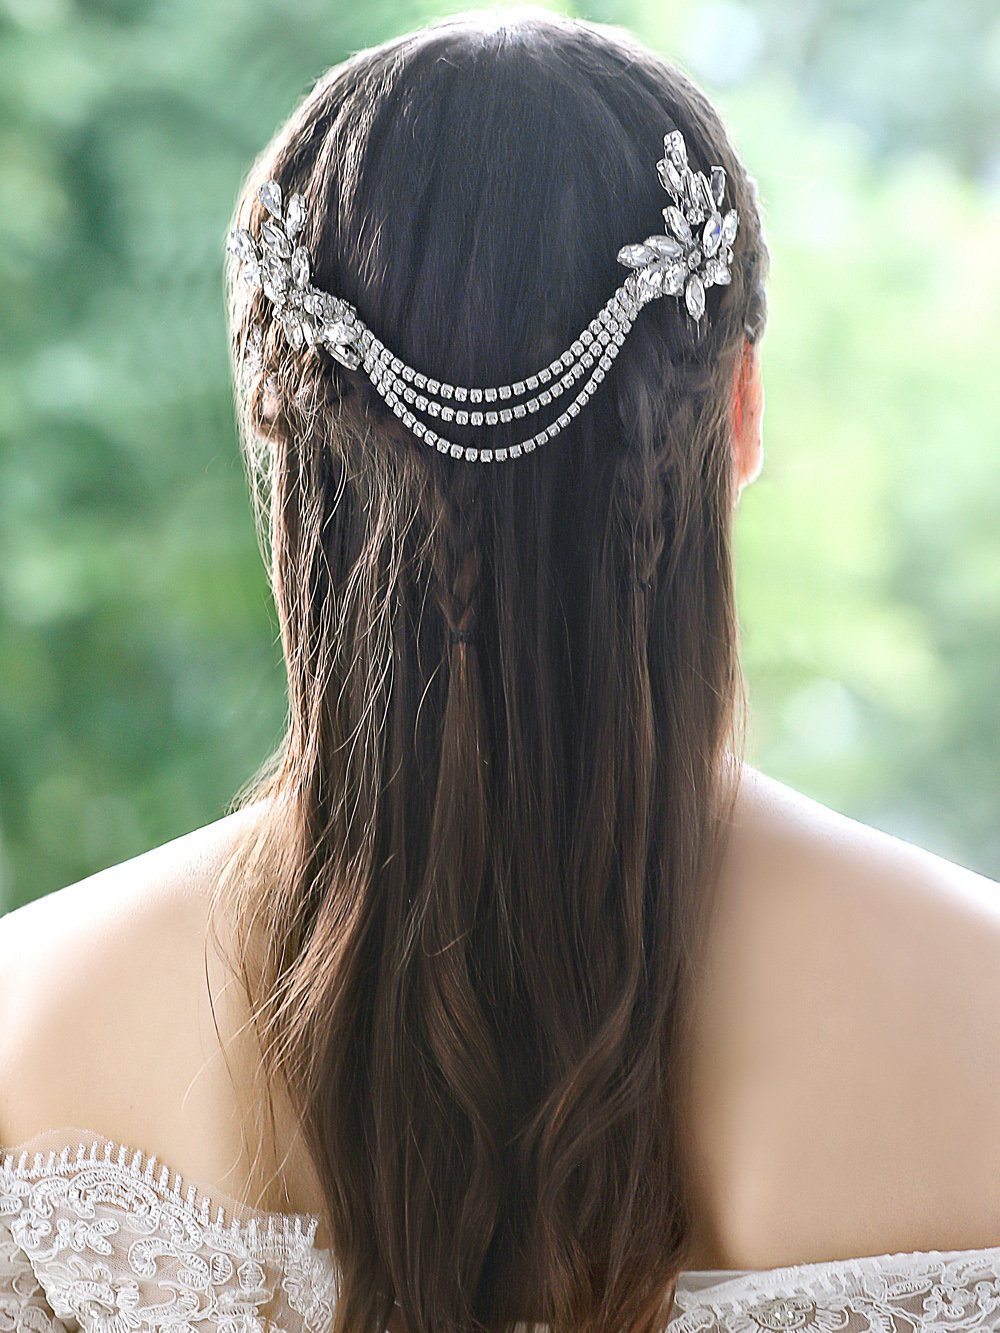 Handcess Wedding Hair Comb Rhinestones Hair Side Comb Accessories Bridal Chain Headpiece for Bride Bridesmaid (Silver)